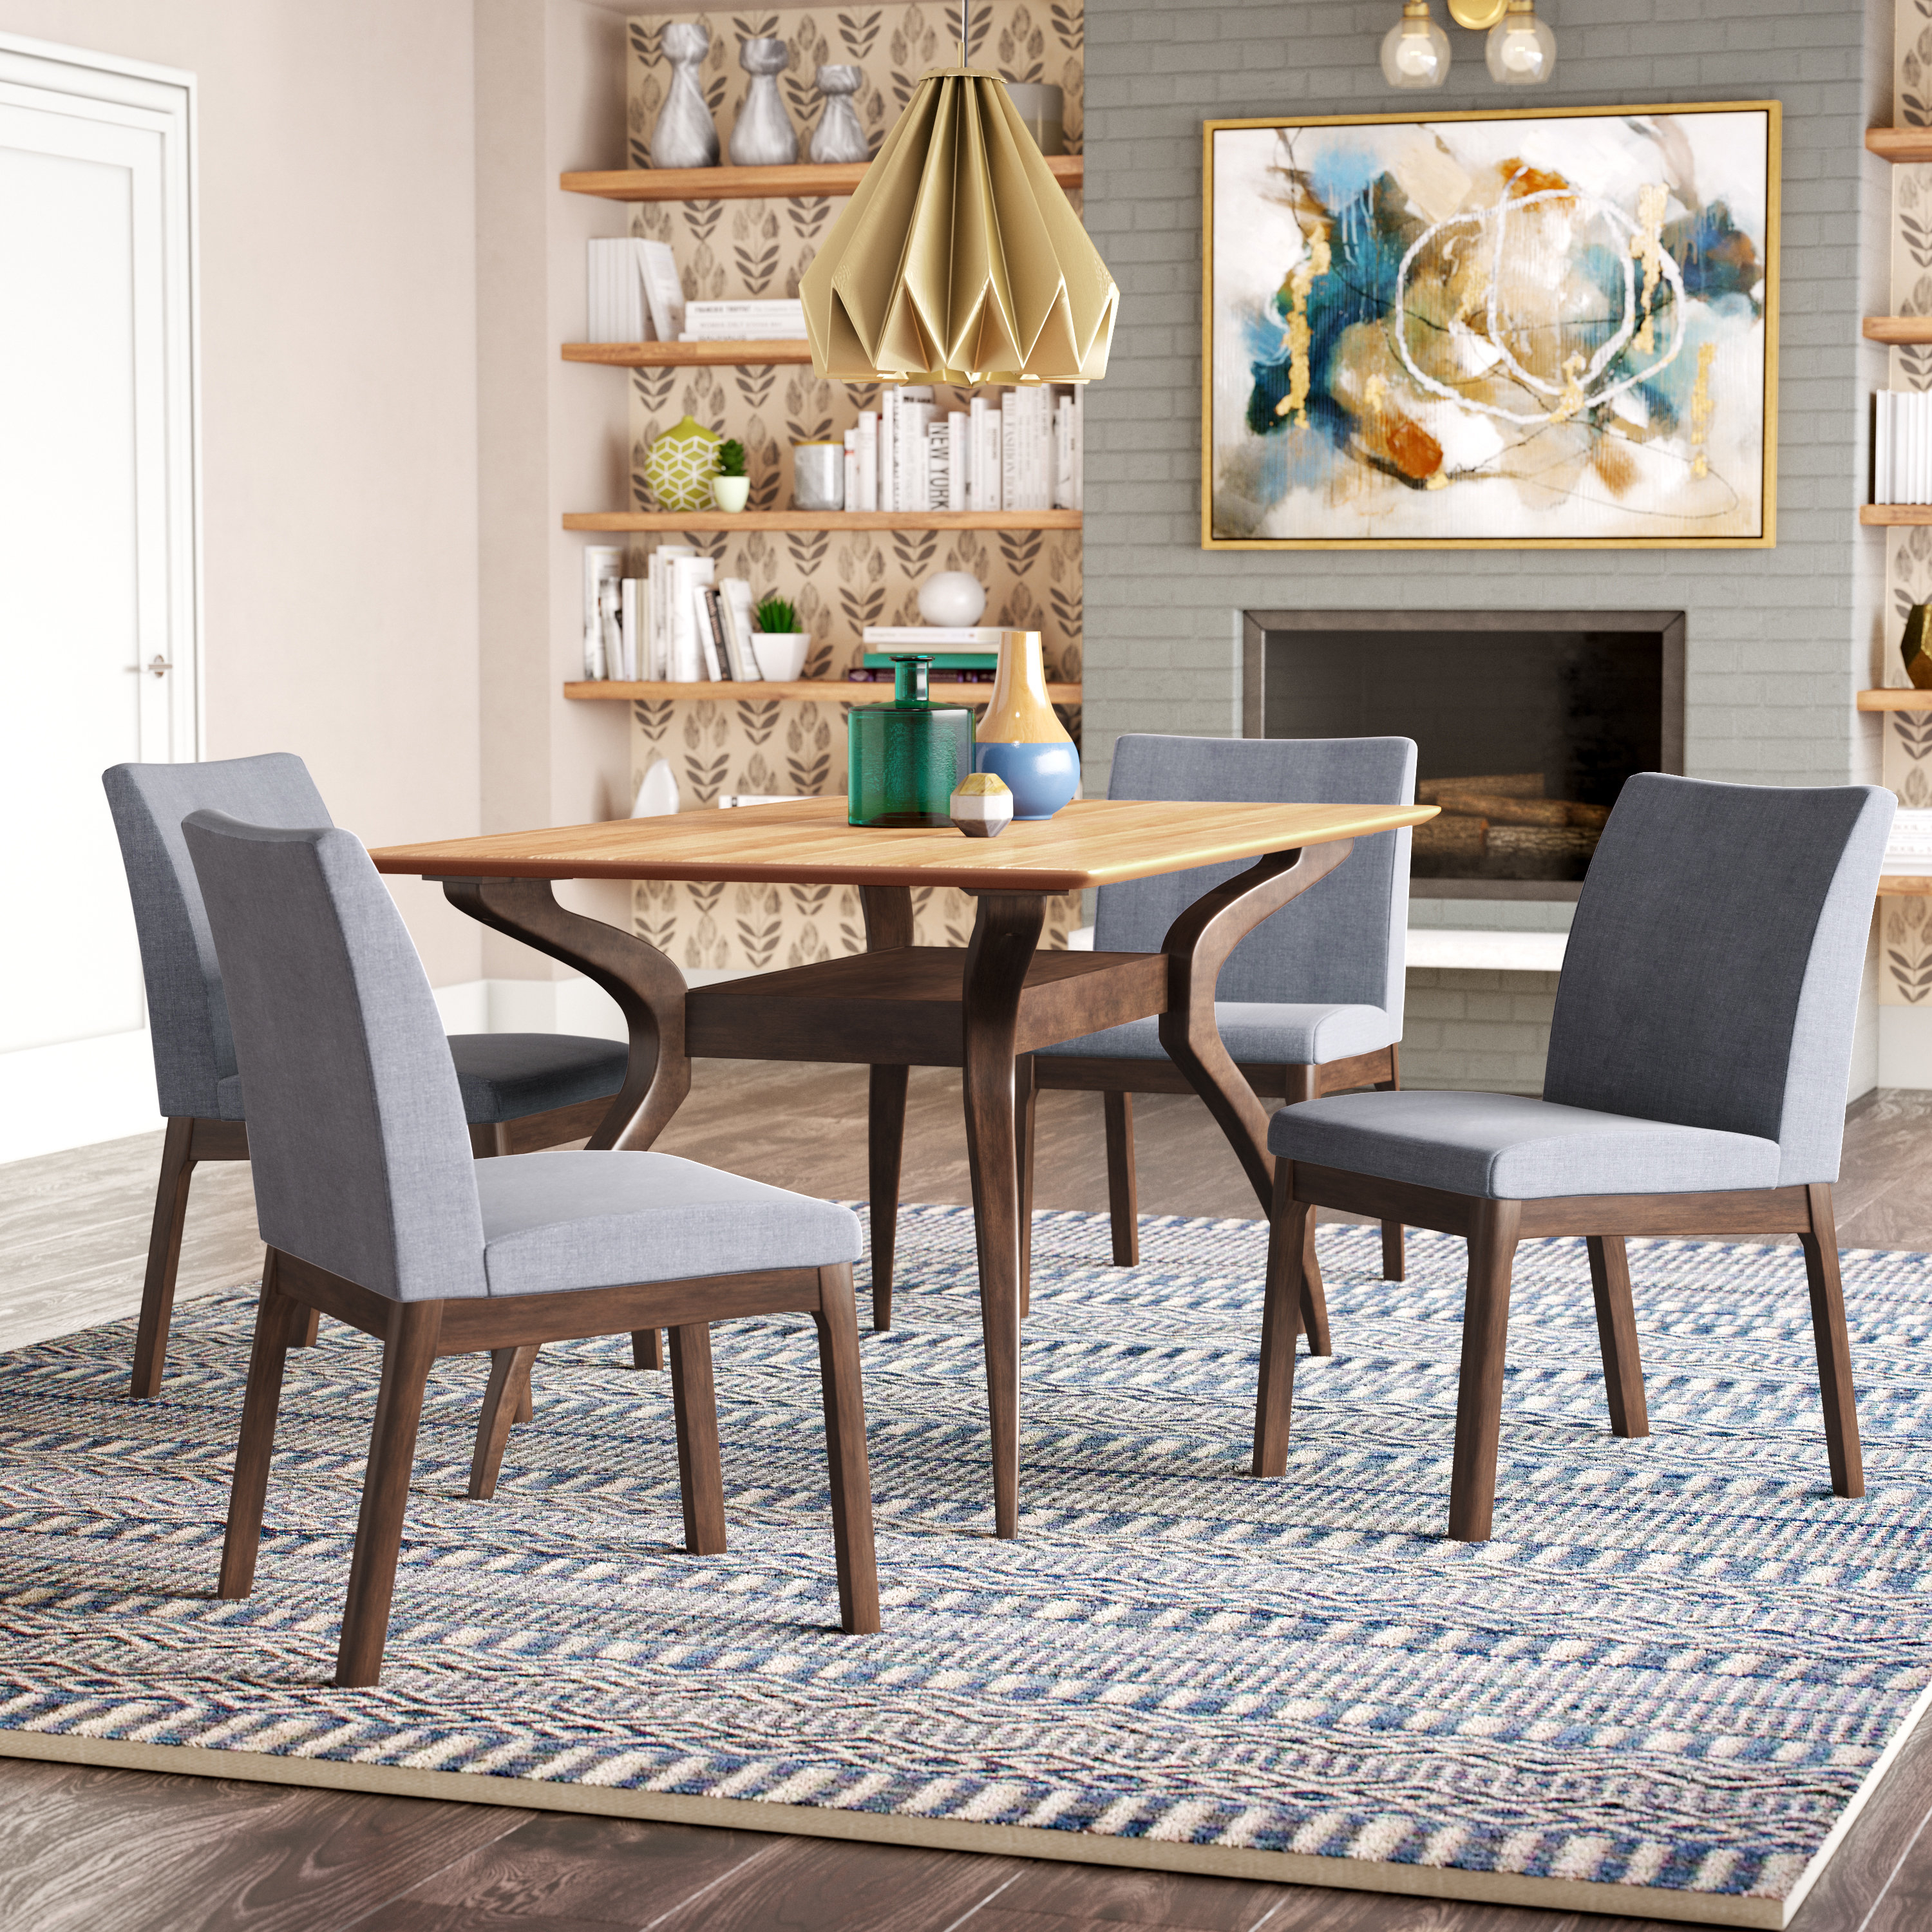 Tunis 5 Piece Dining Set Pertaining To Latest Liles 5 Piece Breakfast Nook Dining Sets (Image 19 of 20)